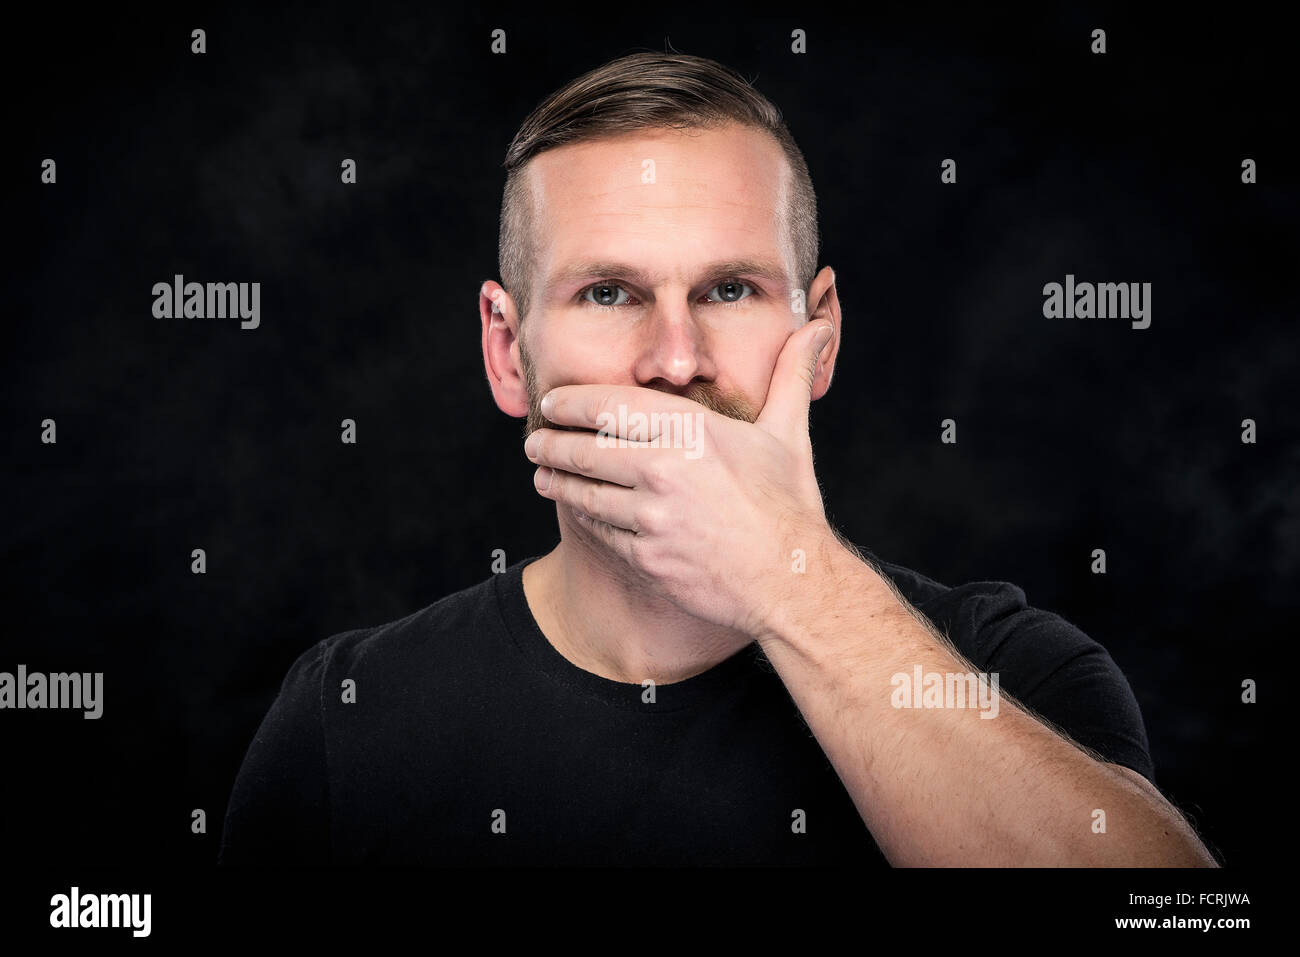 Man with hand covering his mouth. - Stock Image